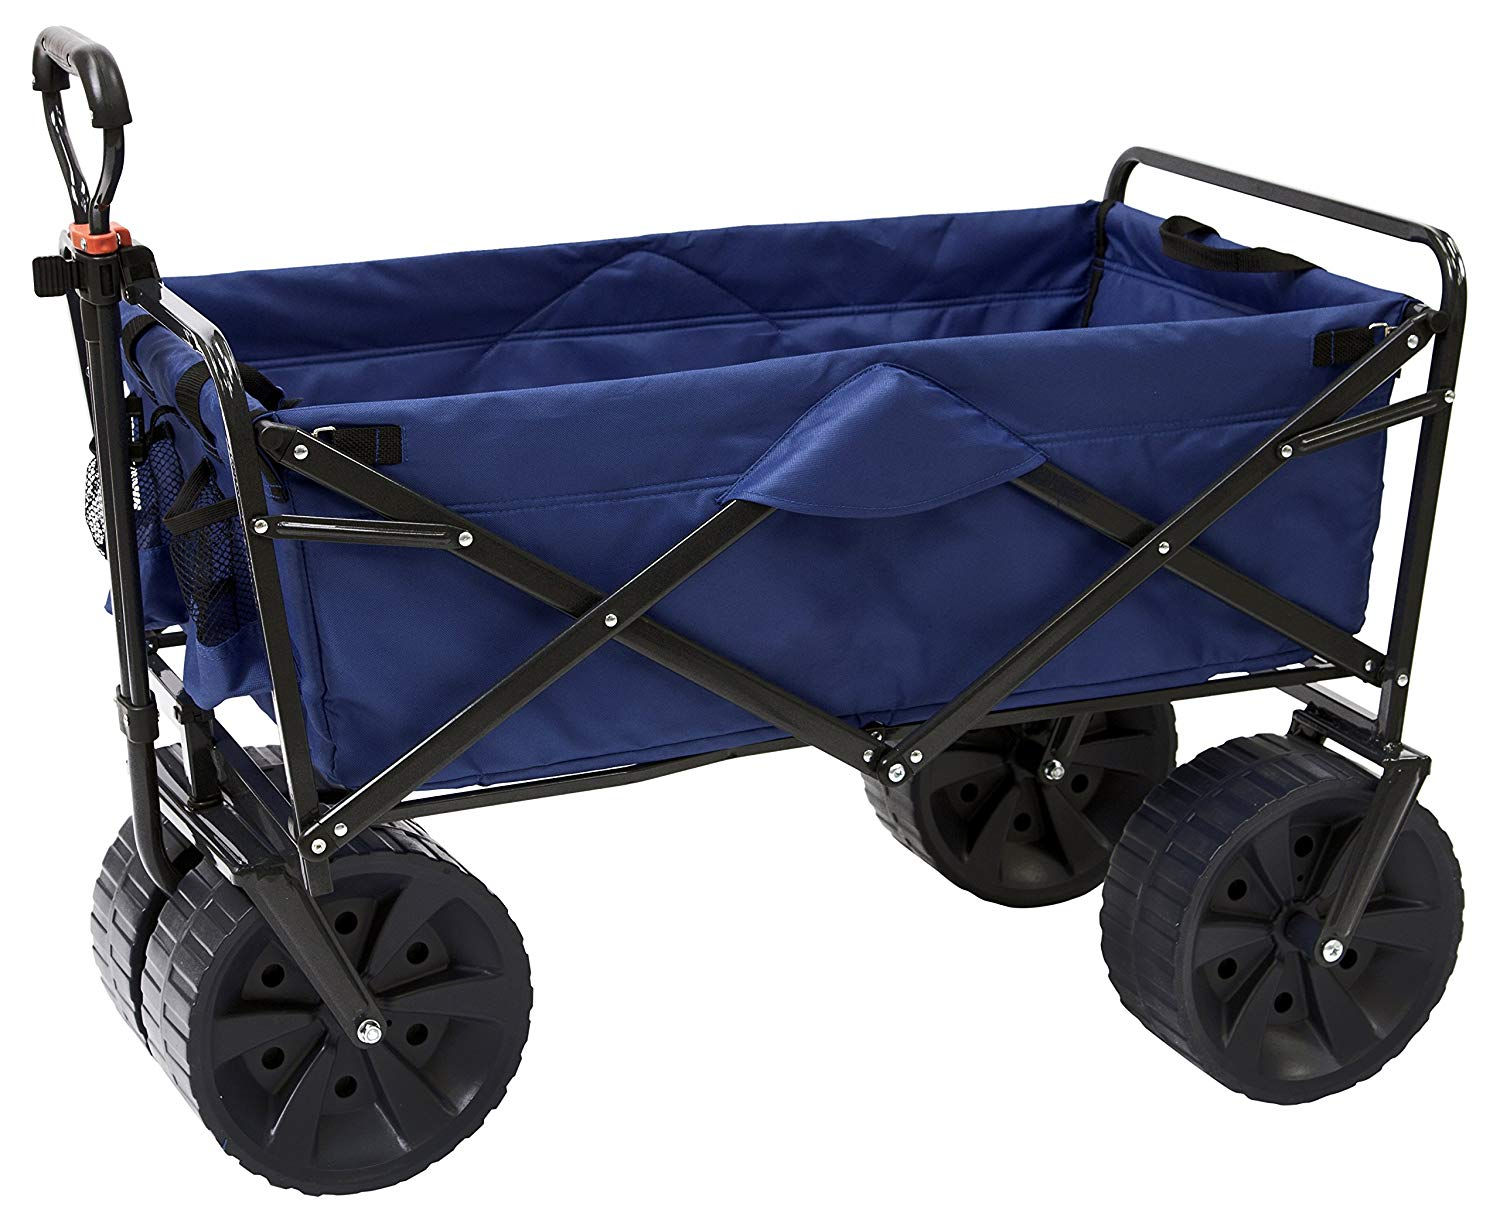 Mac Sports Heavy Duty Collapsible Folding All Terrain Utility Beach Wagon Cart  - beach trolley